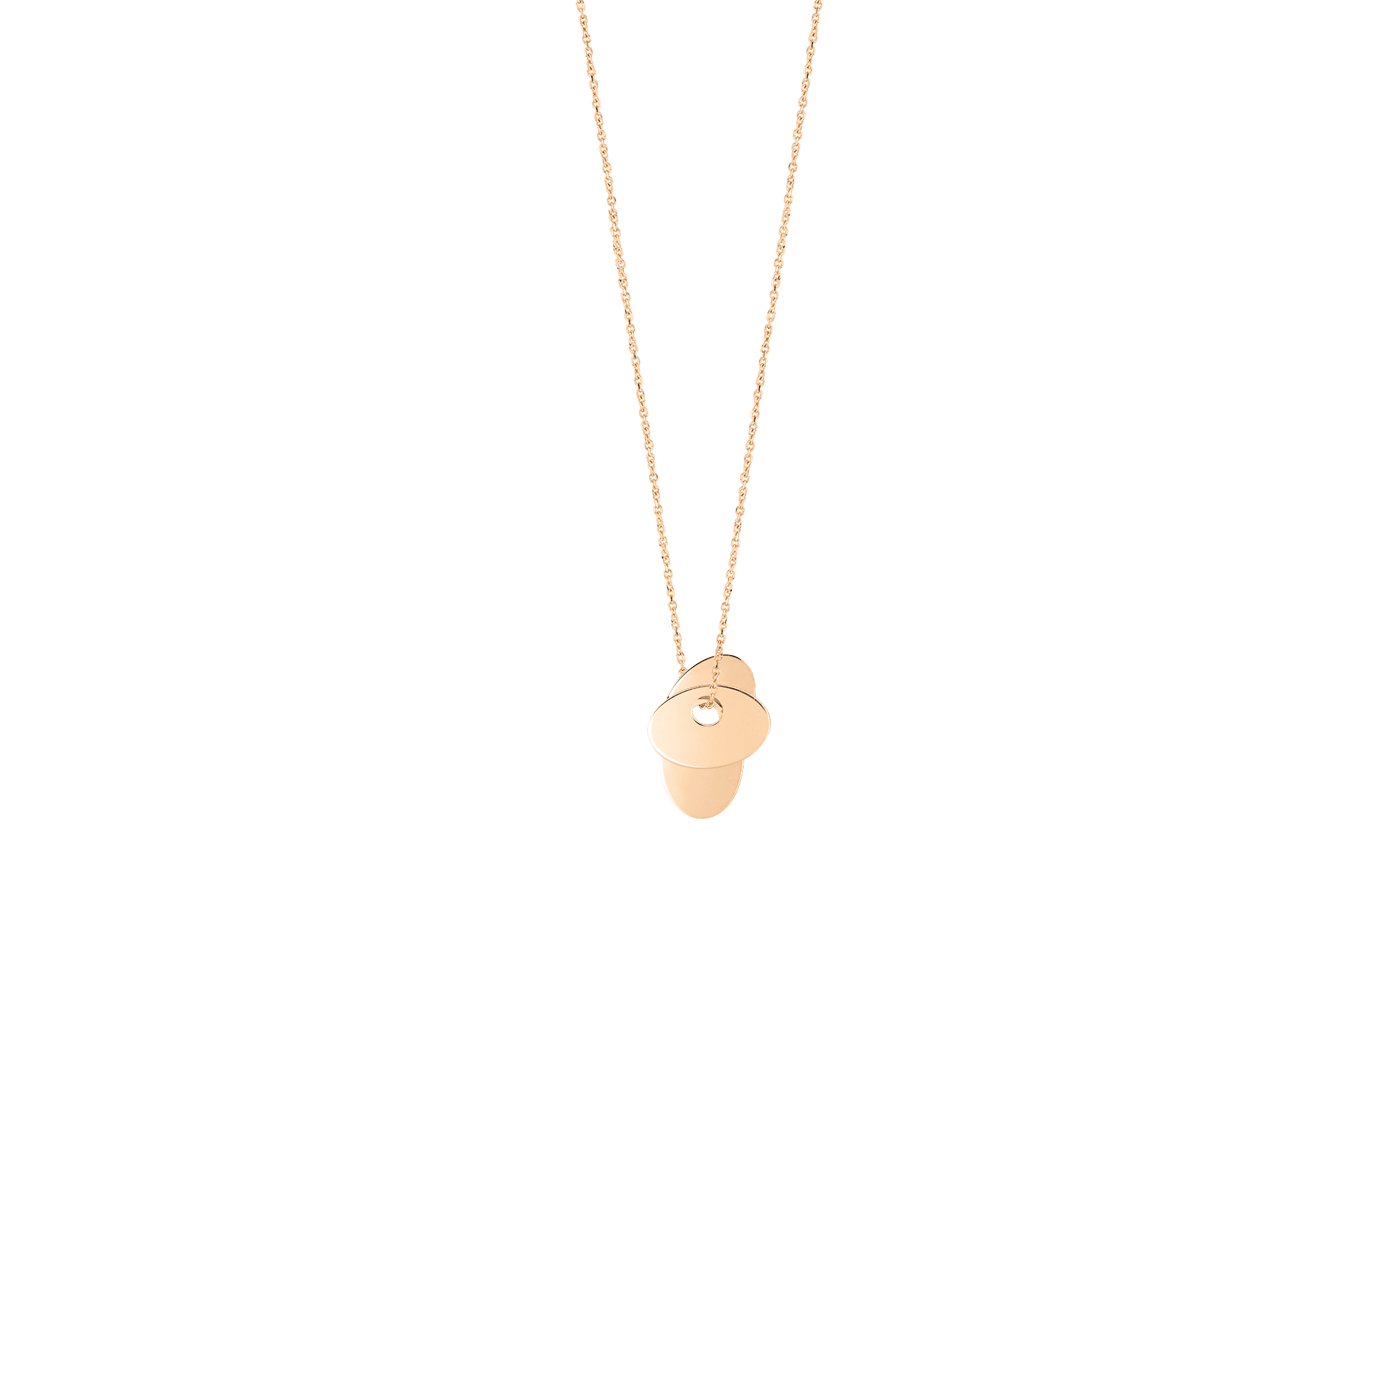 Collier Ginette NY Trois Sequins en or rose, collier Ginette - Lepage